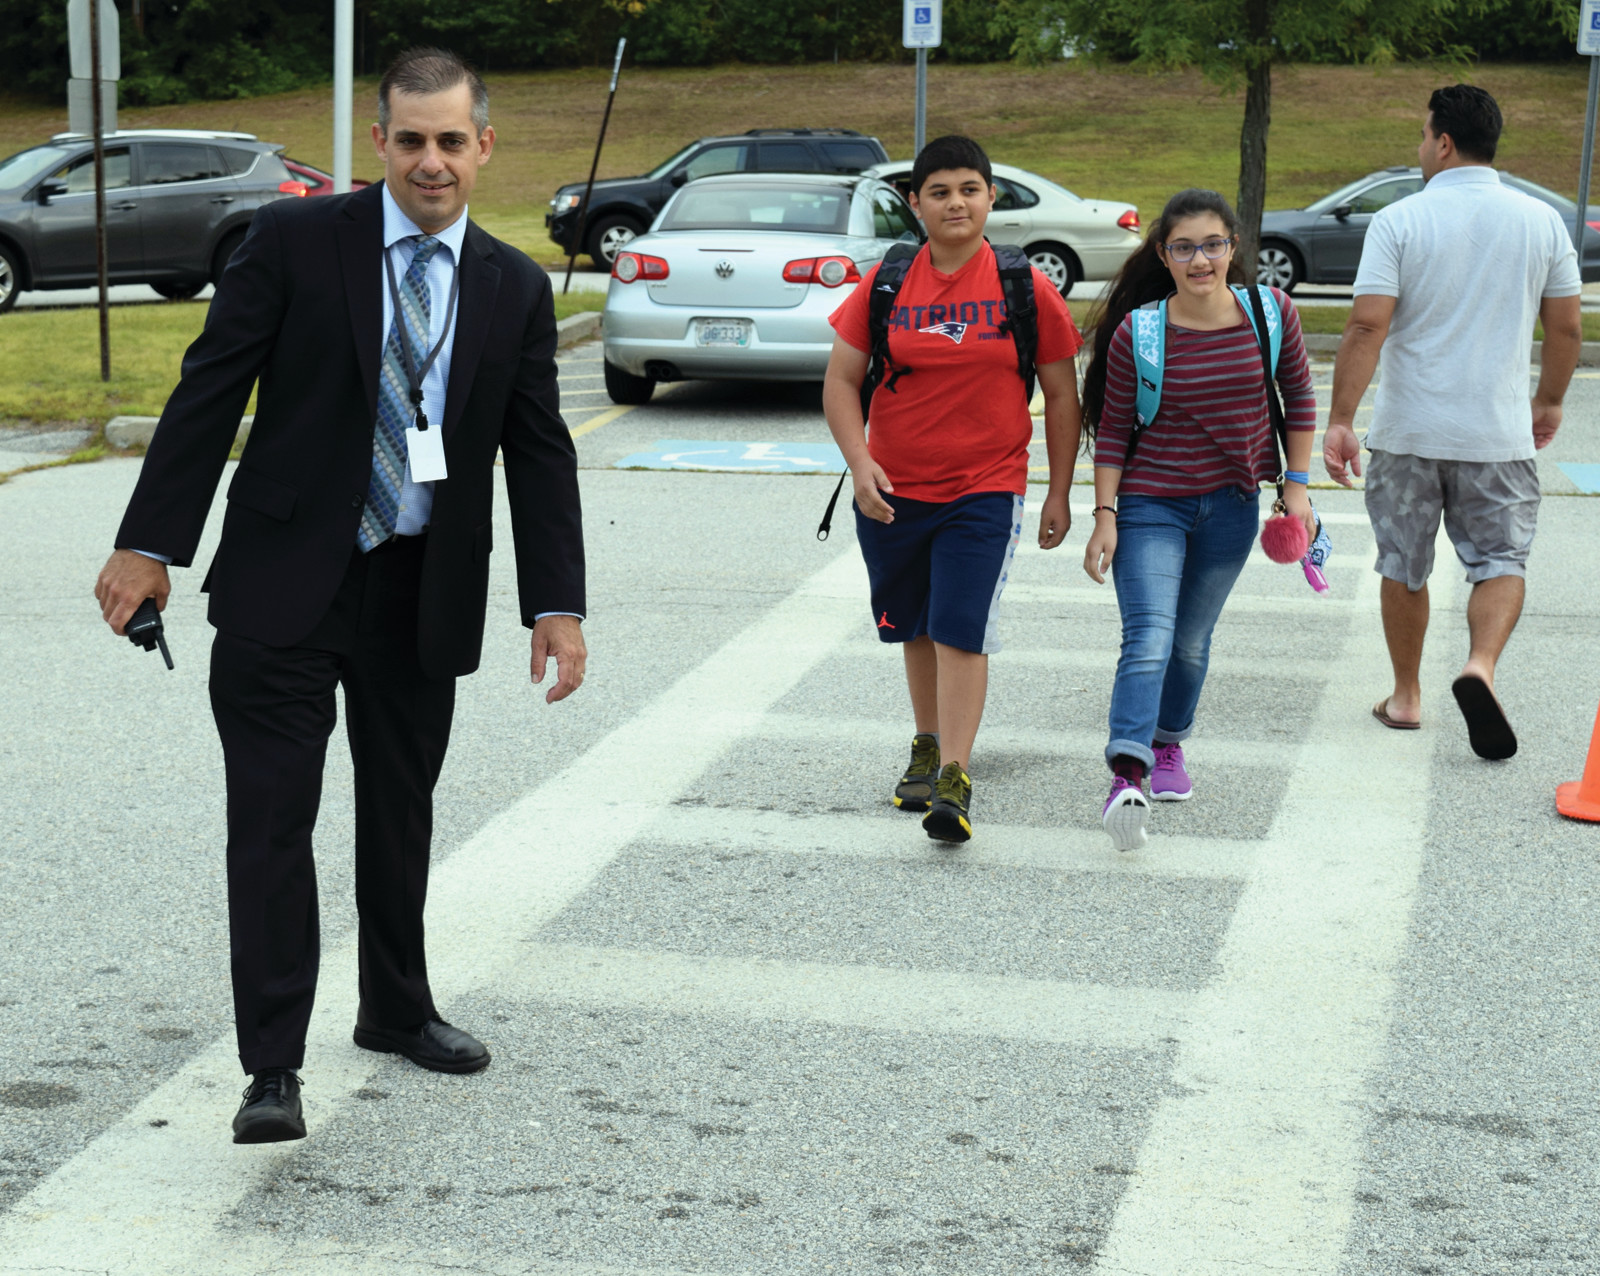 KING COBRA: Western Hills Principal Tim Vesey welcomed all of his Cobras back for another school year on Tuesday morning.